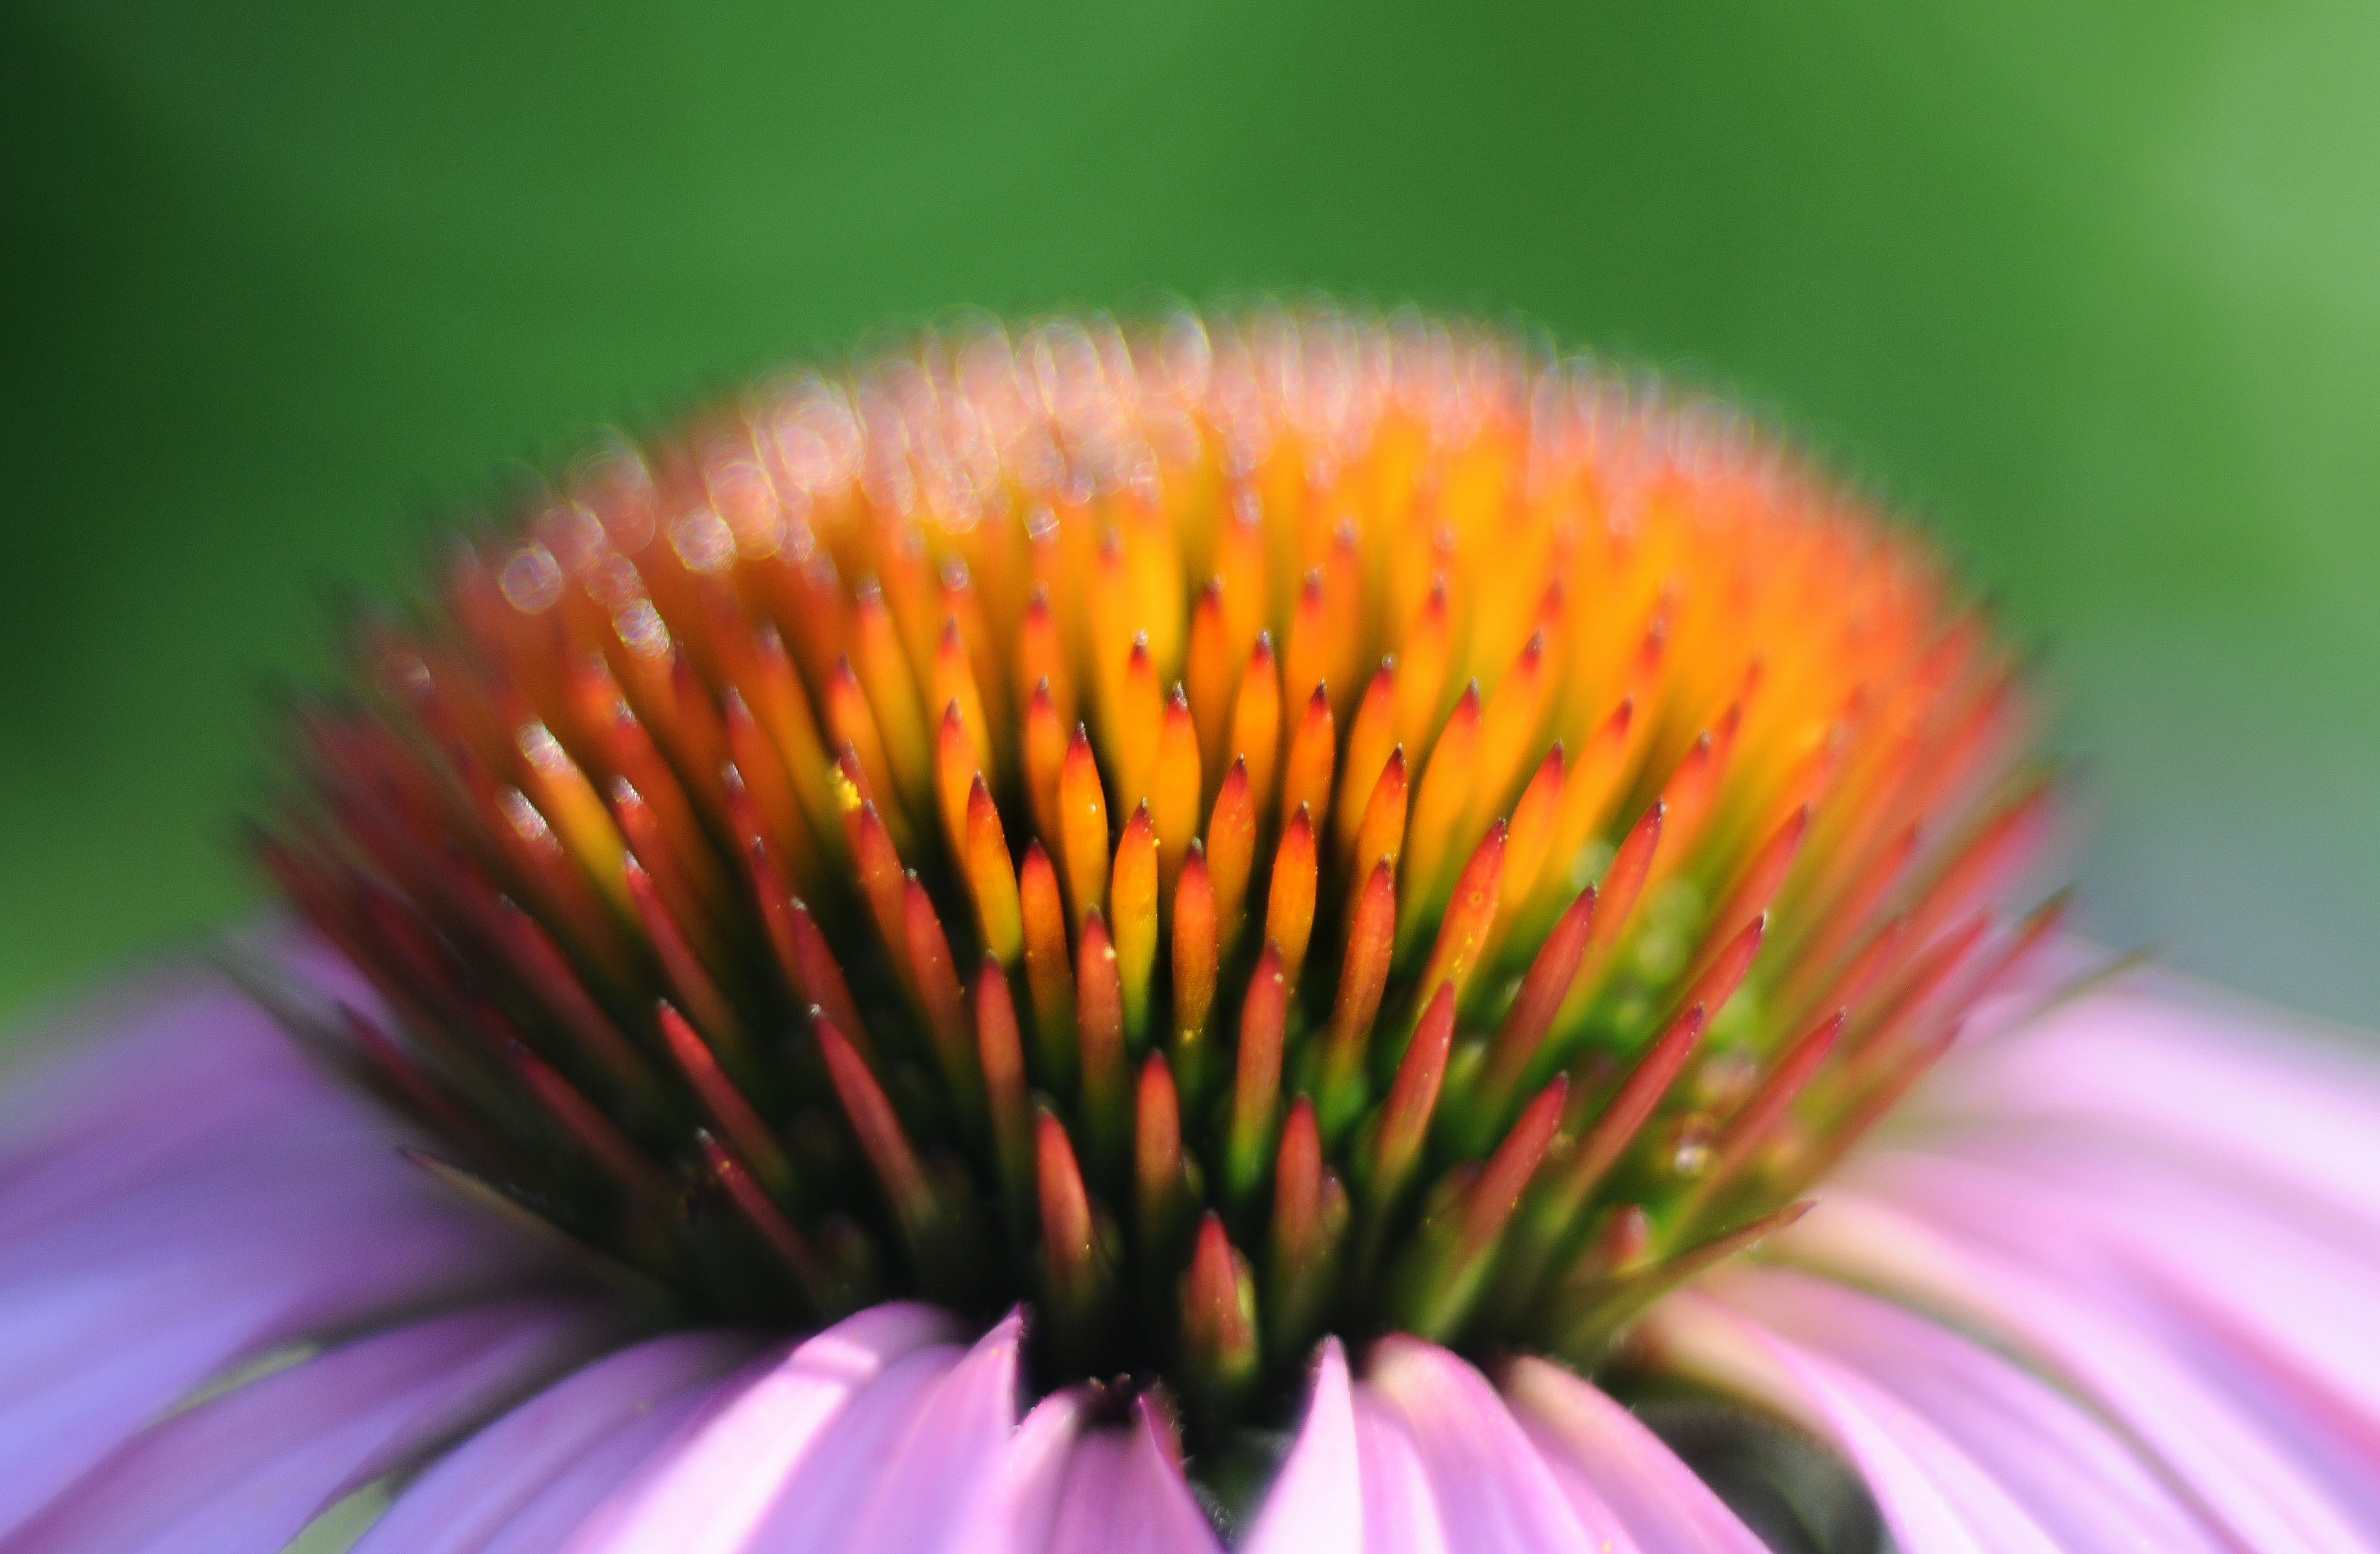 Free stock photo of close-up view, flower, close to, coneflowers